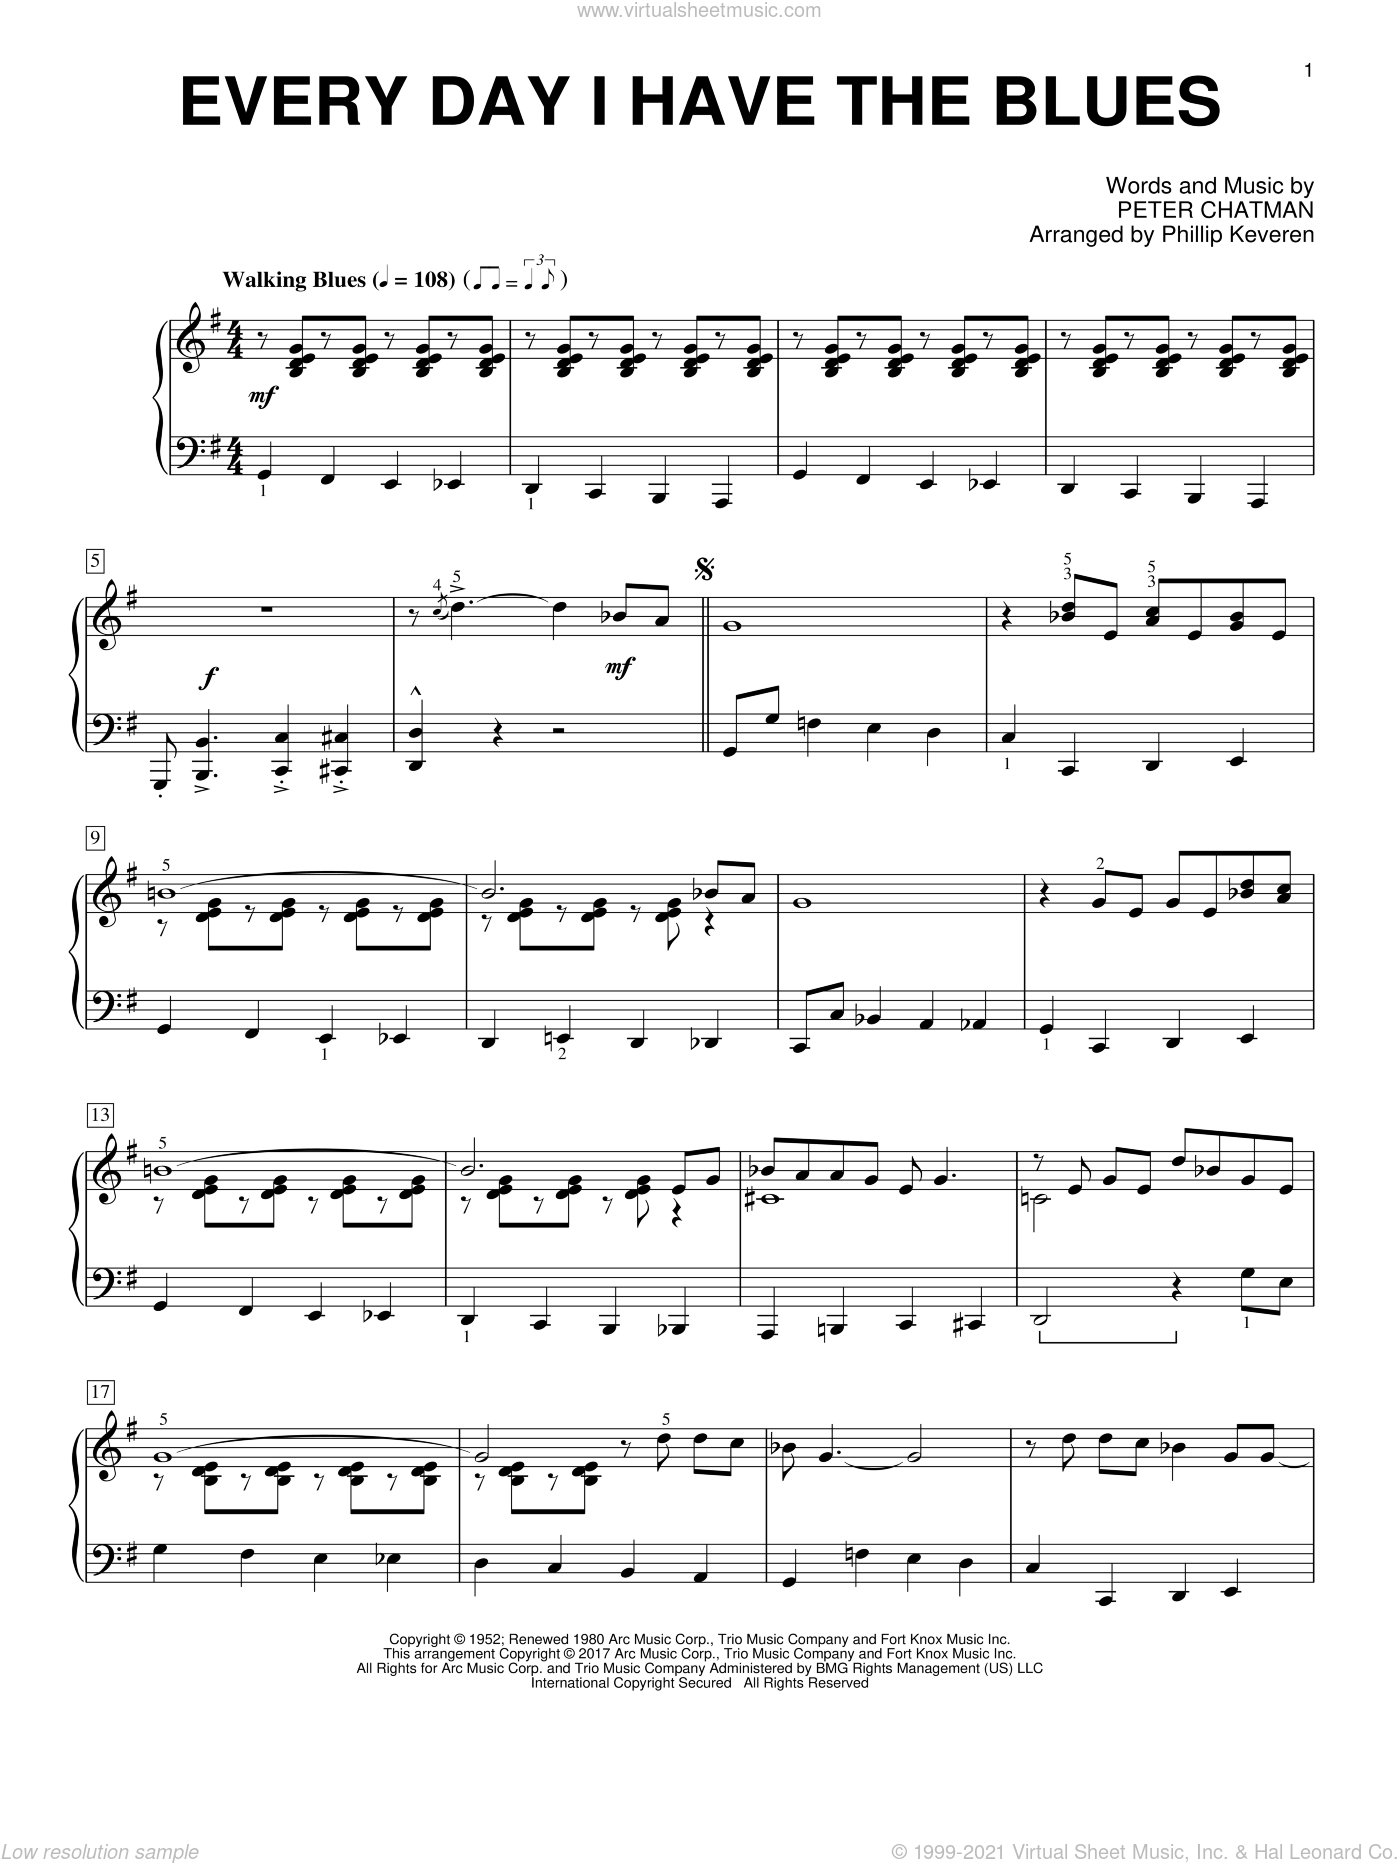 Every Day I Have The Blues sheet music for piano solo by Peter Chatman, Phillip Keveren and B.B. King. Score Image Preview.